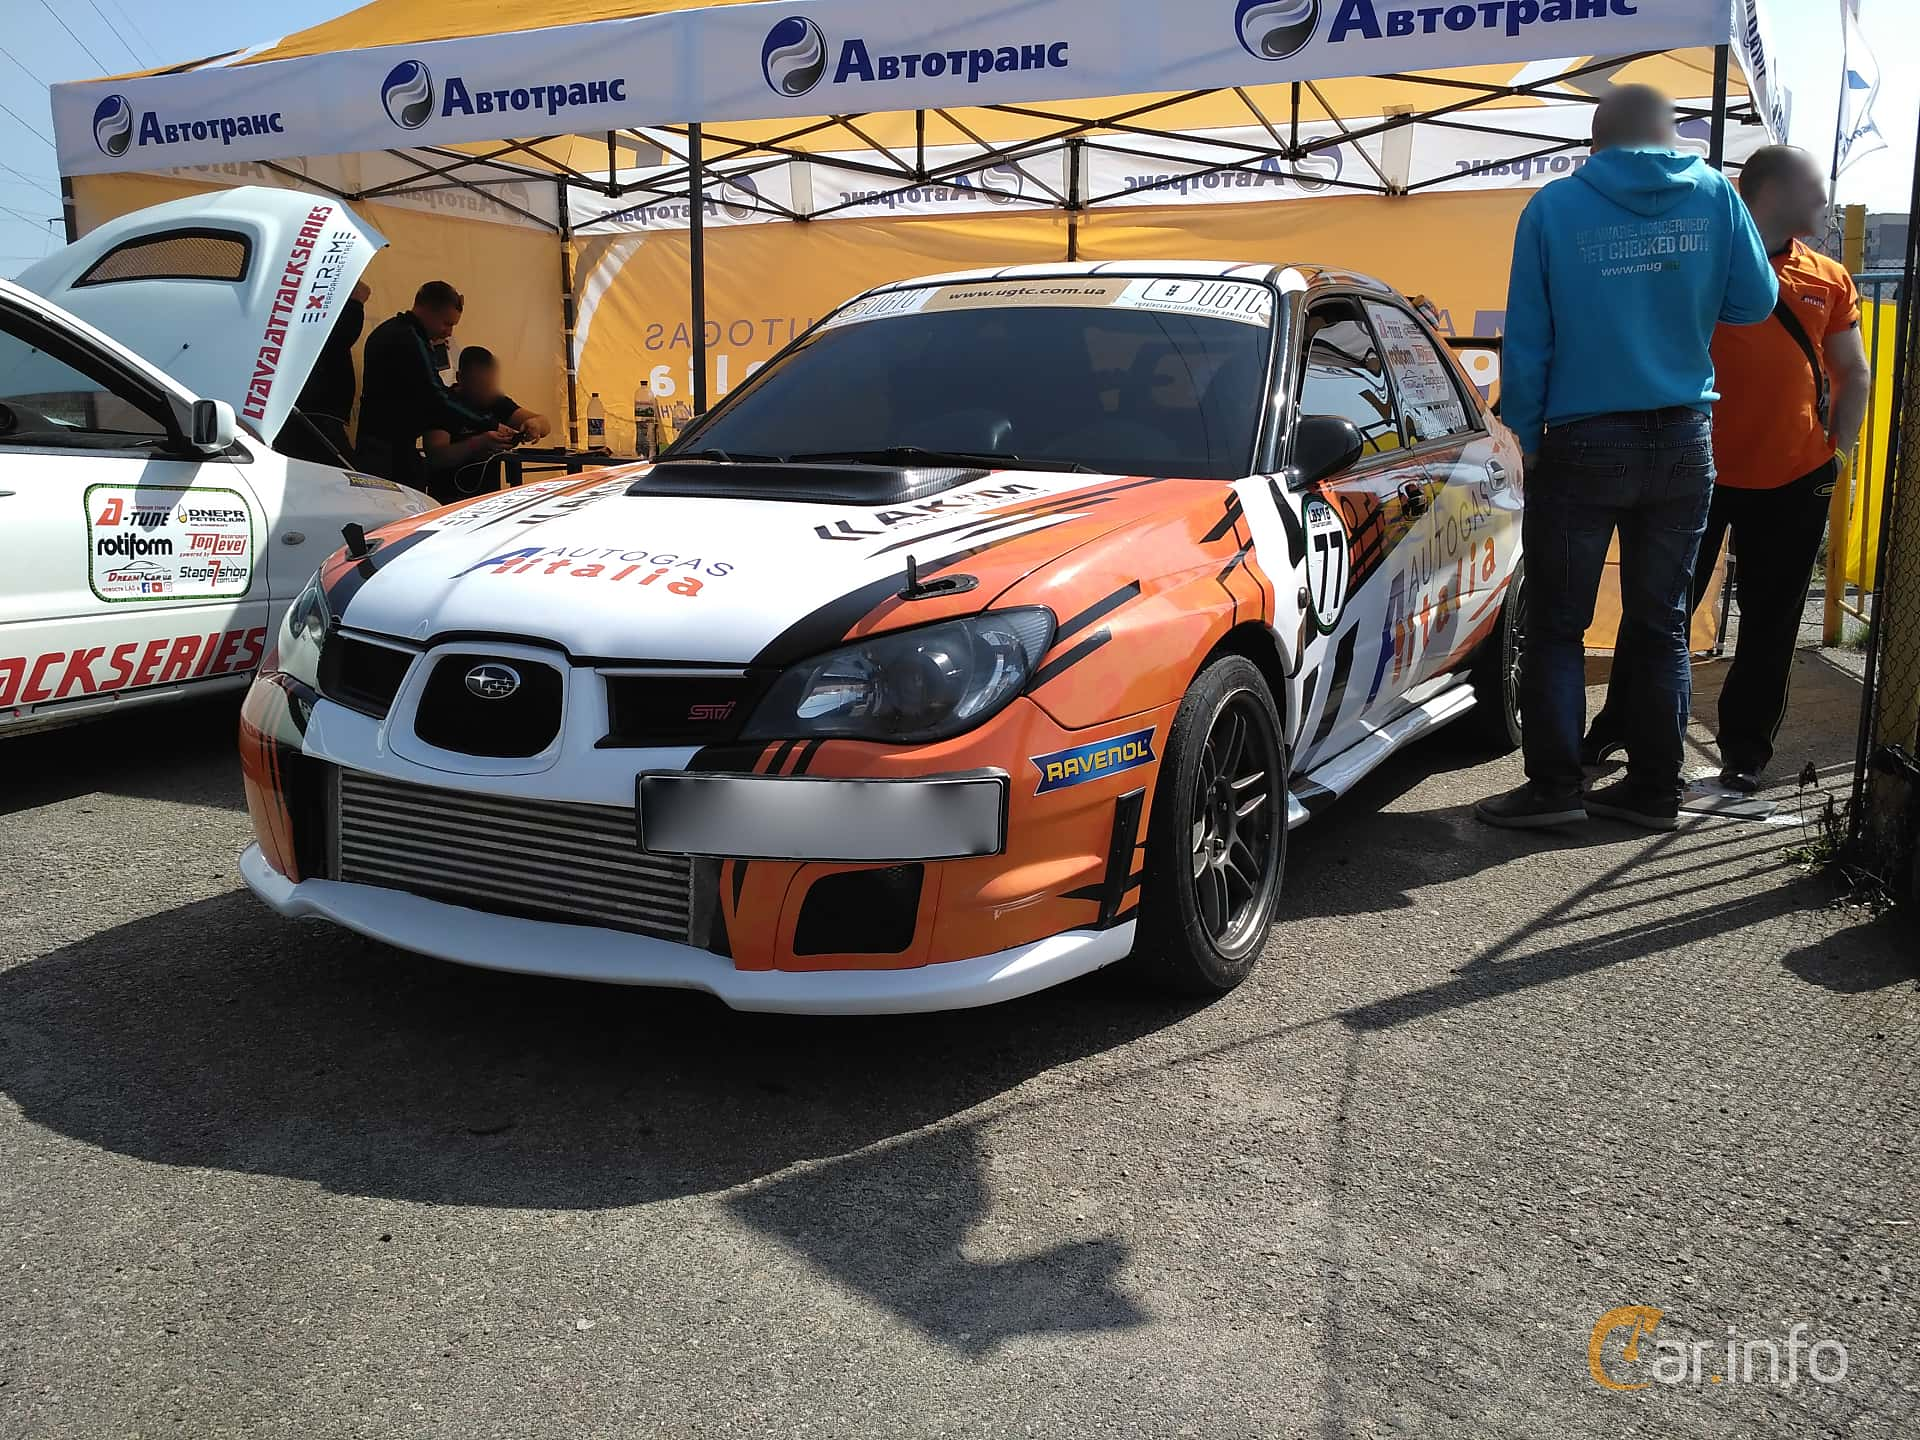 subaru-impreza-sedan-front-side-ltava-time-attack-1st-stage-1-526932.jpg